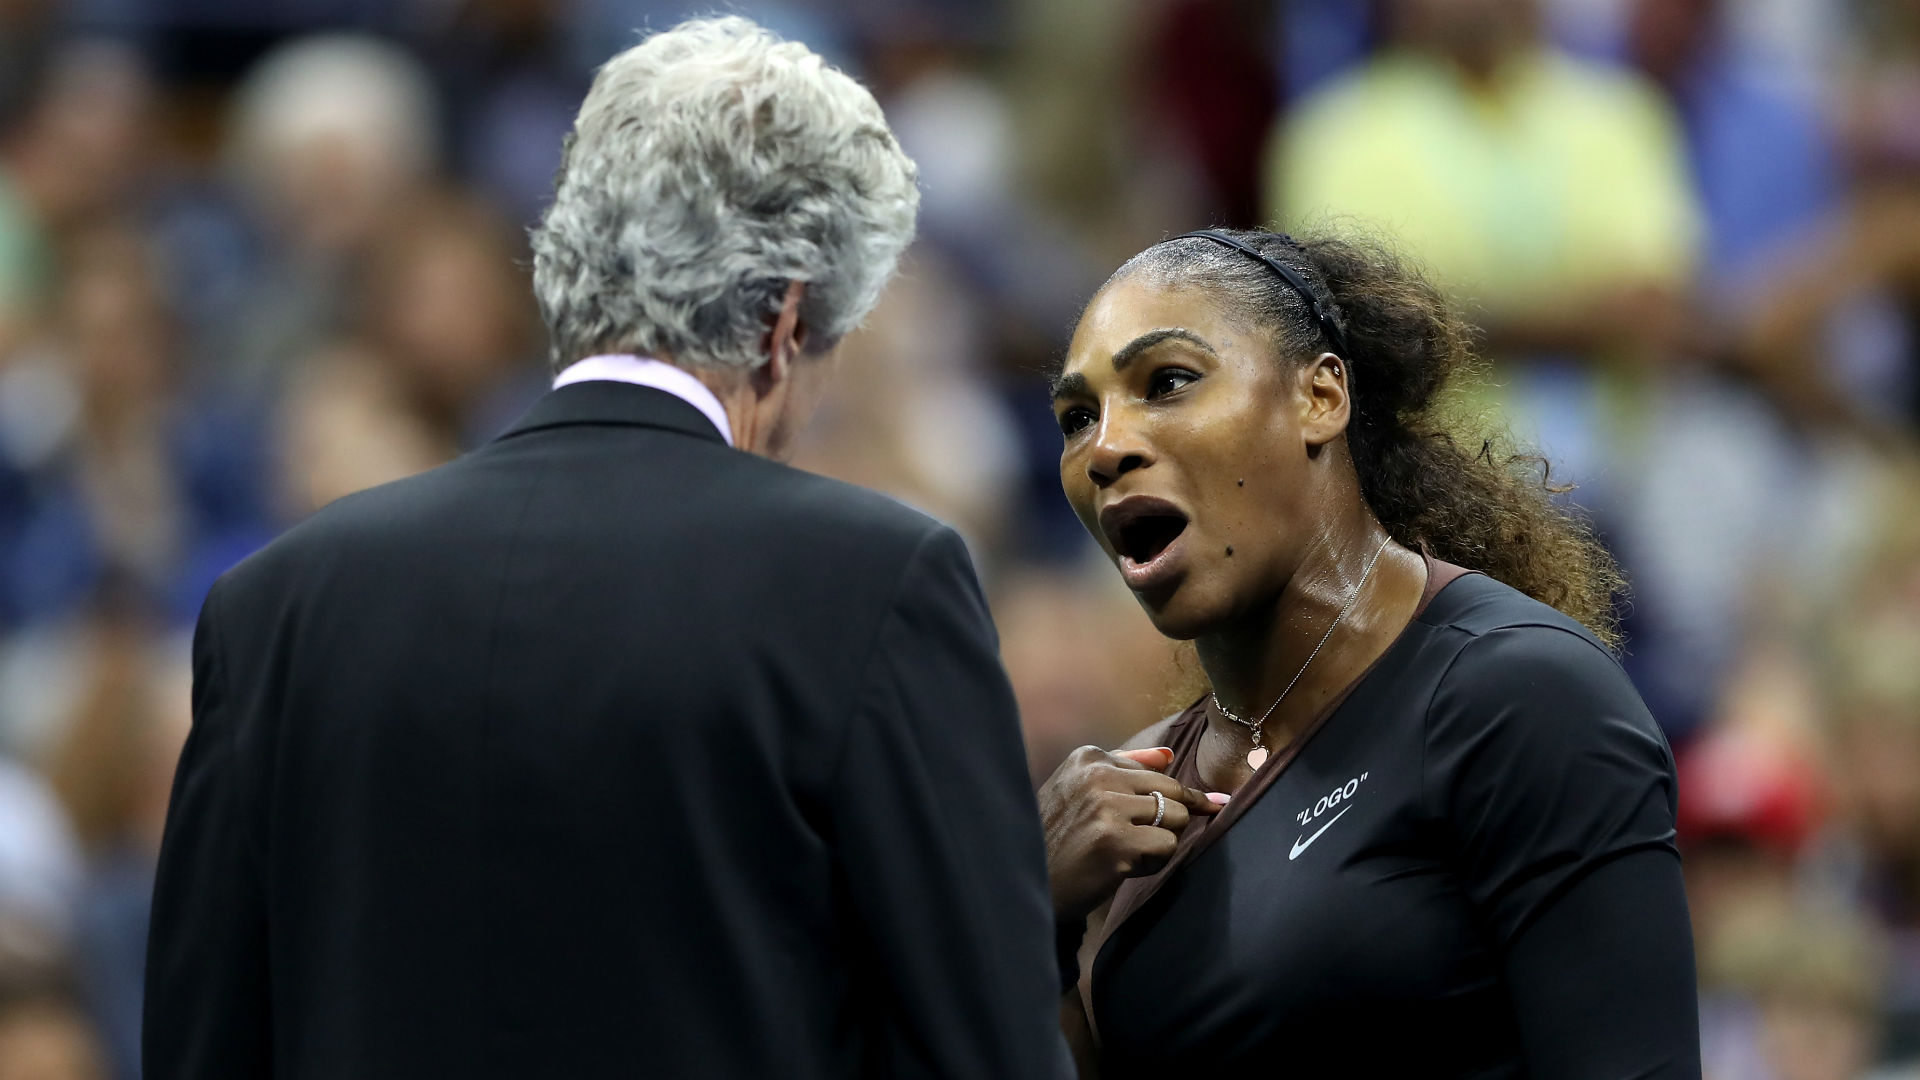 Umpire Breaks His Silence Amid Serena Williams' Sexism Accusations Over Controversial Calls